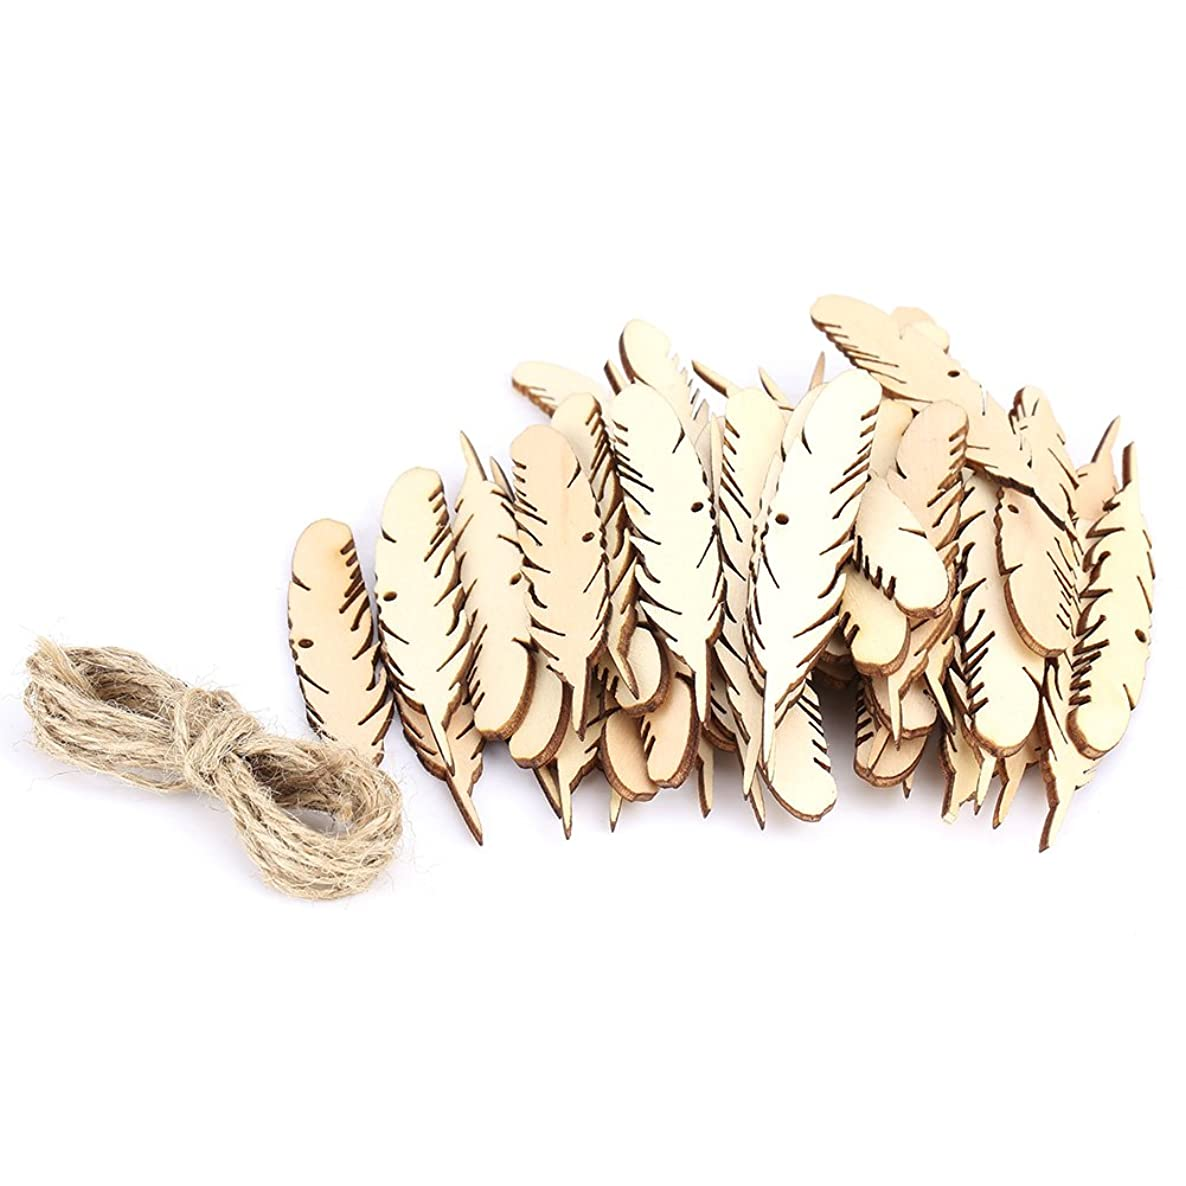 50Pcs/Bag Feather Wood Crafts Blank Wood Slices Wooden Hanging Gift Tags for Wall Wedding Party Room Decoration Accessories DIY